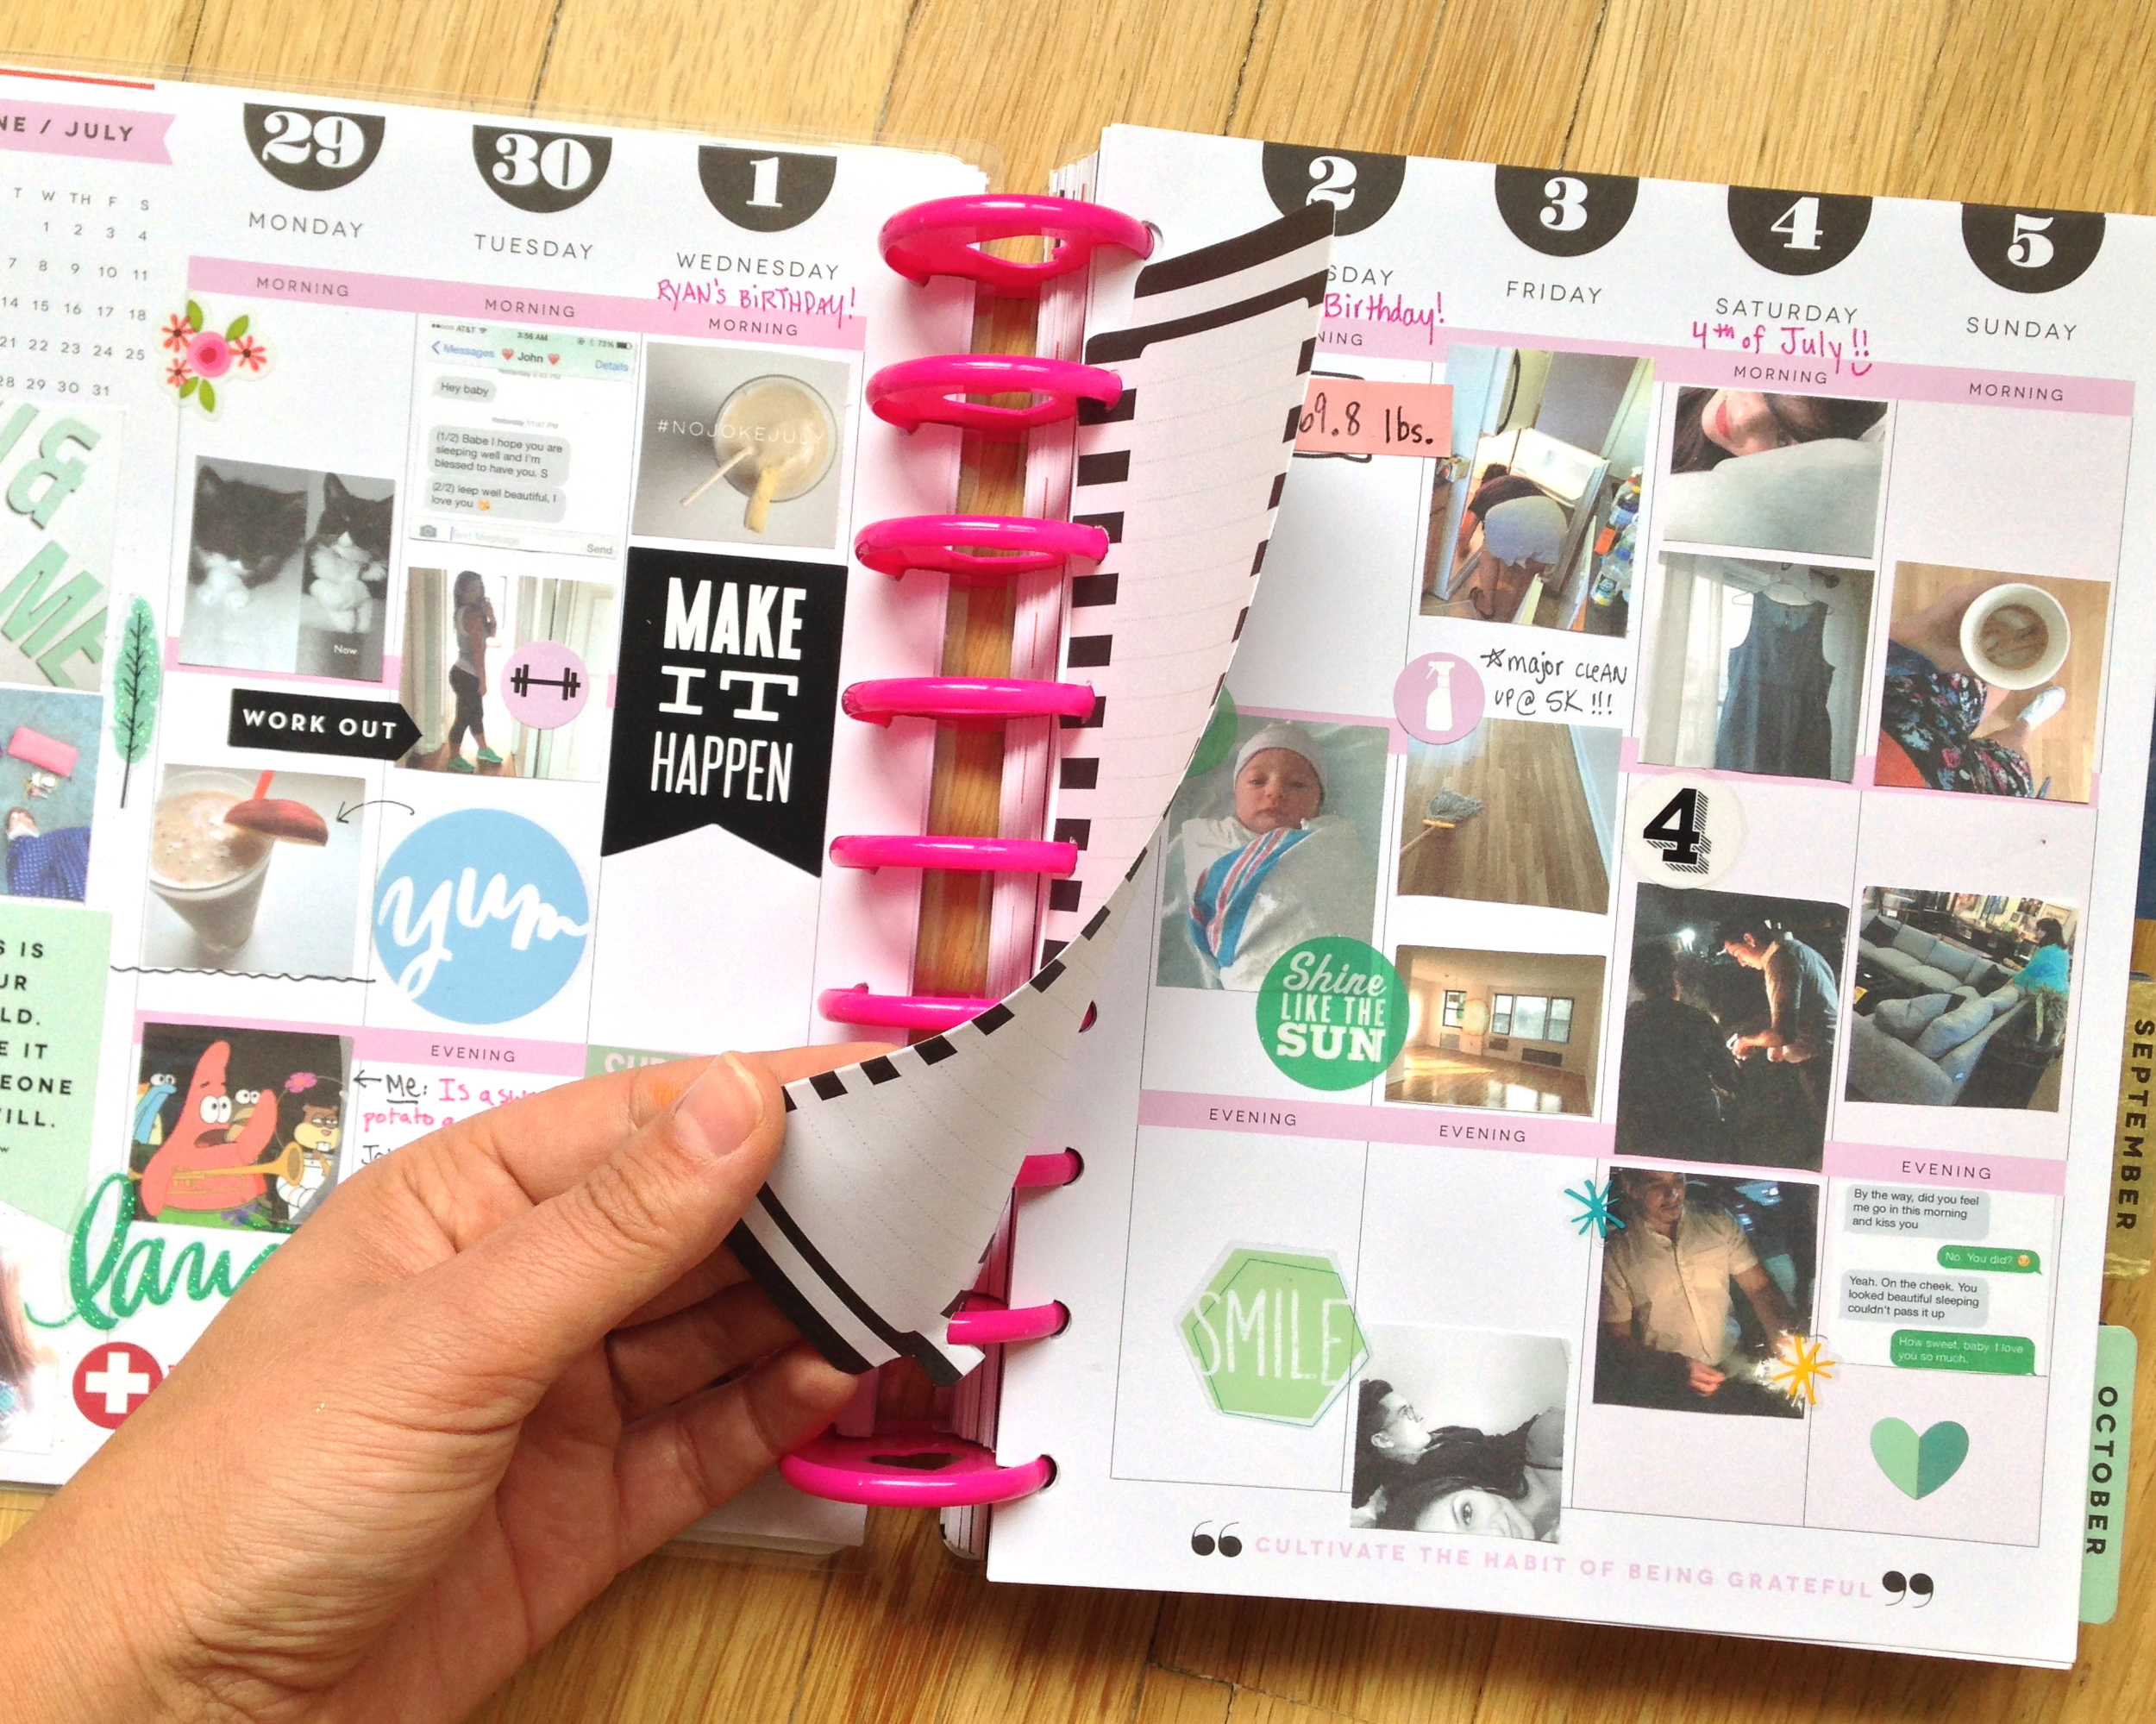 DIY double-sided notepads from The Happy Planner™ line created by mambi Social Media Coordinator Amanda Zampelli | me & my BIG ideas